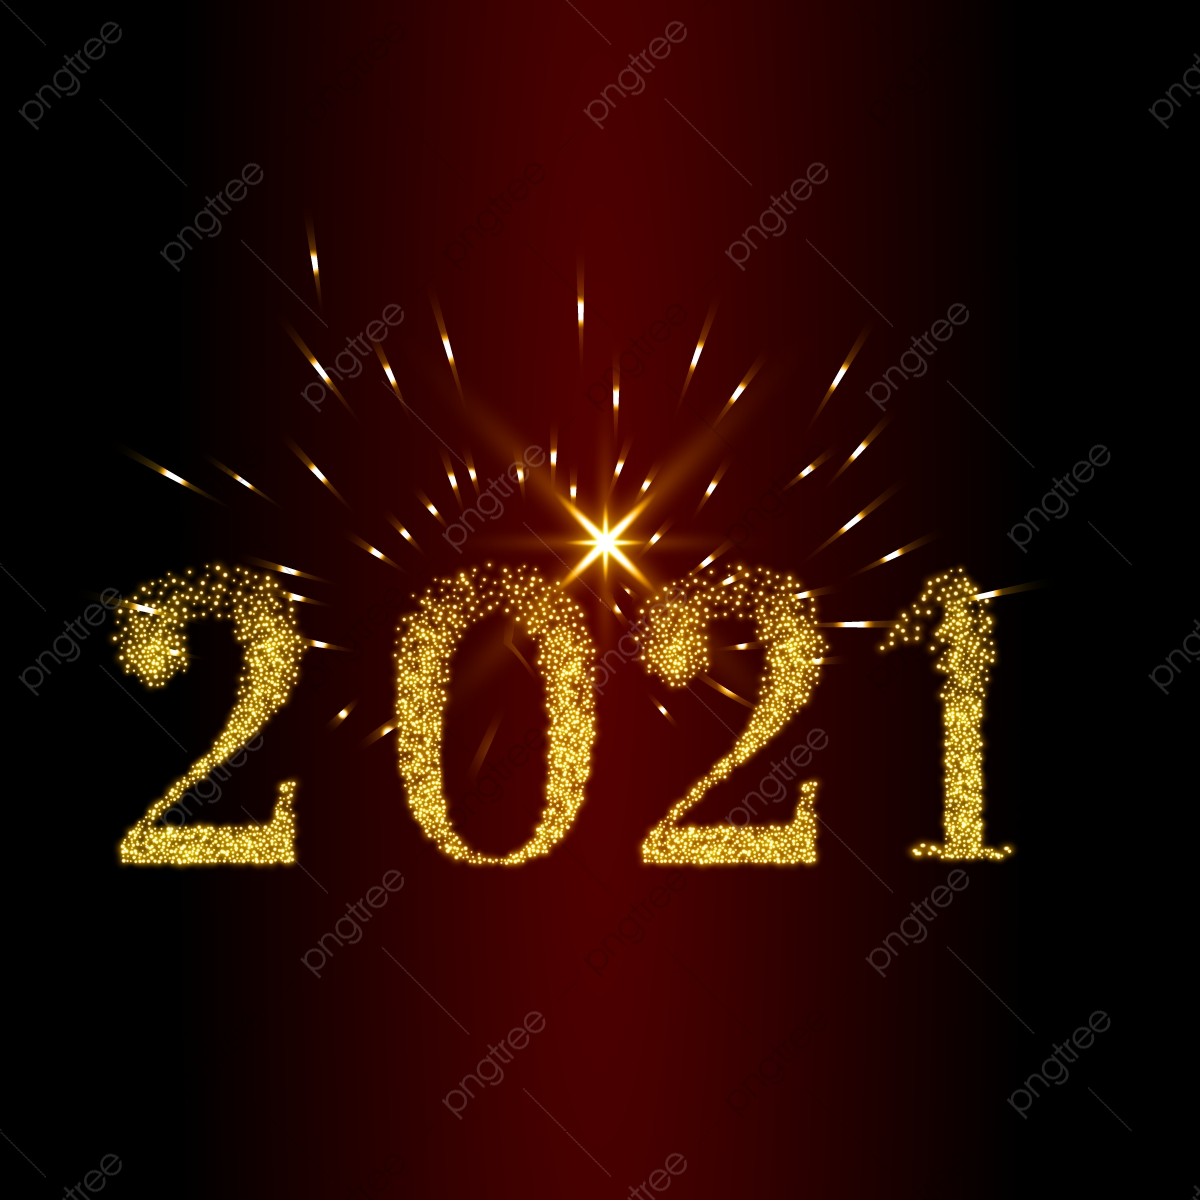 golden color happy new year 2021 design 2021 happynewyear design png and vector with transparent background for free download https pngtree com freepng golden color happy new year 2021 design 5483628 html